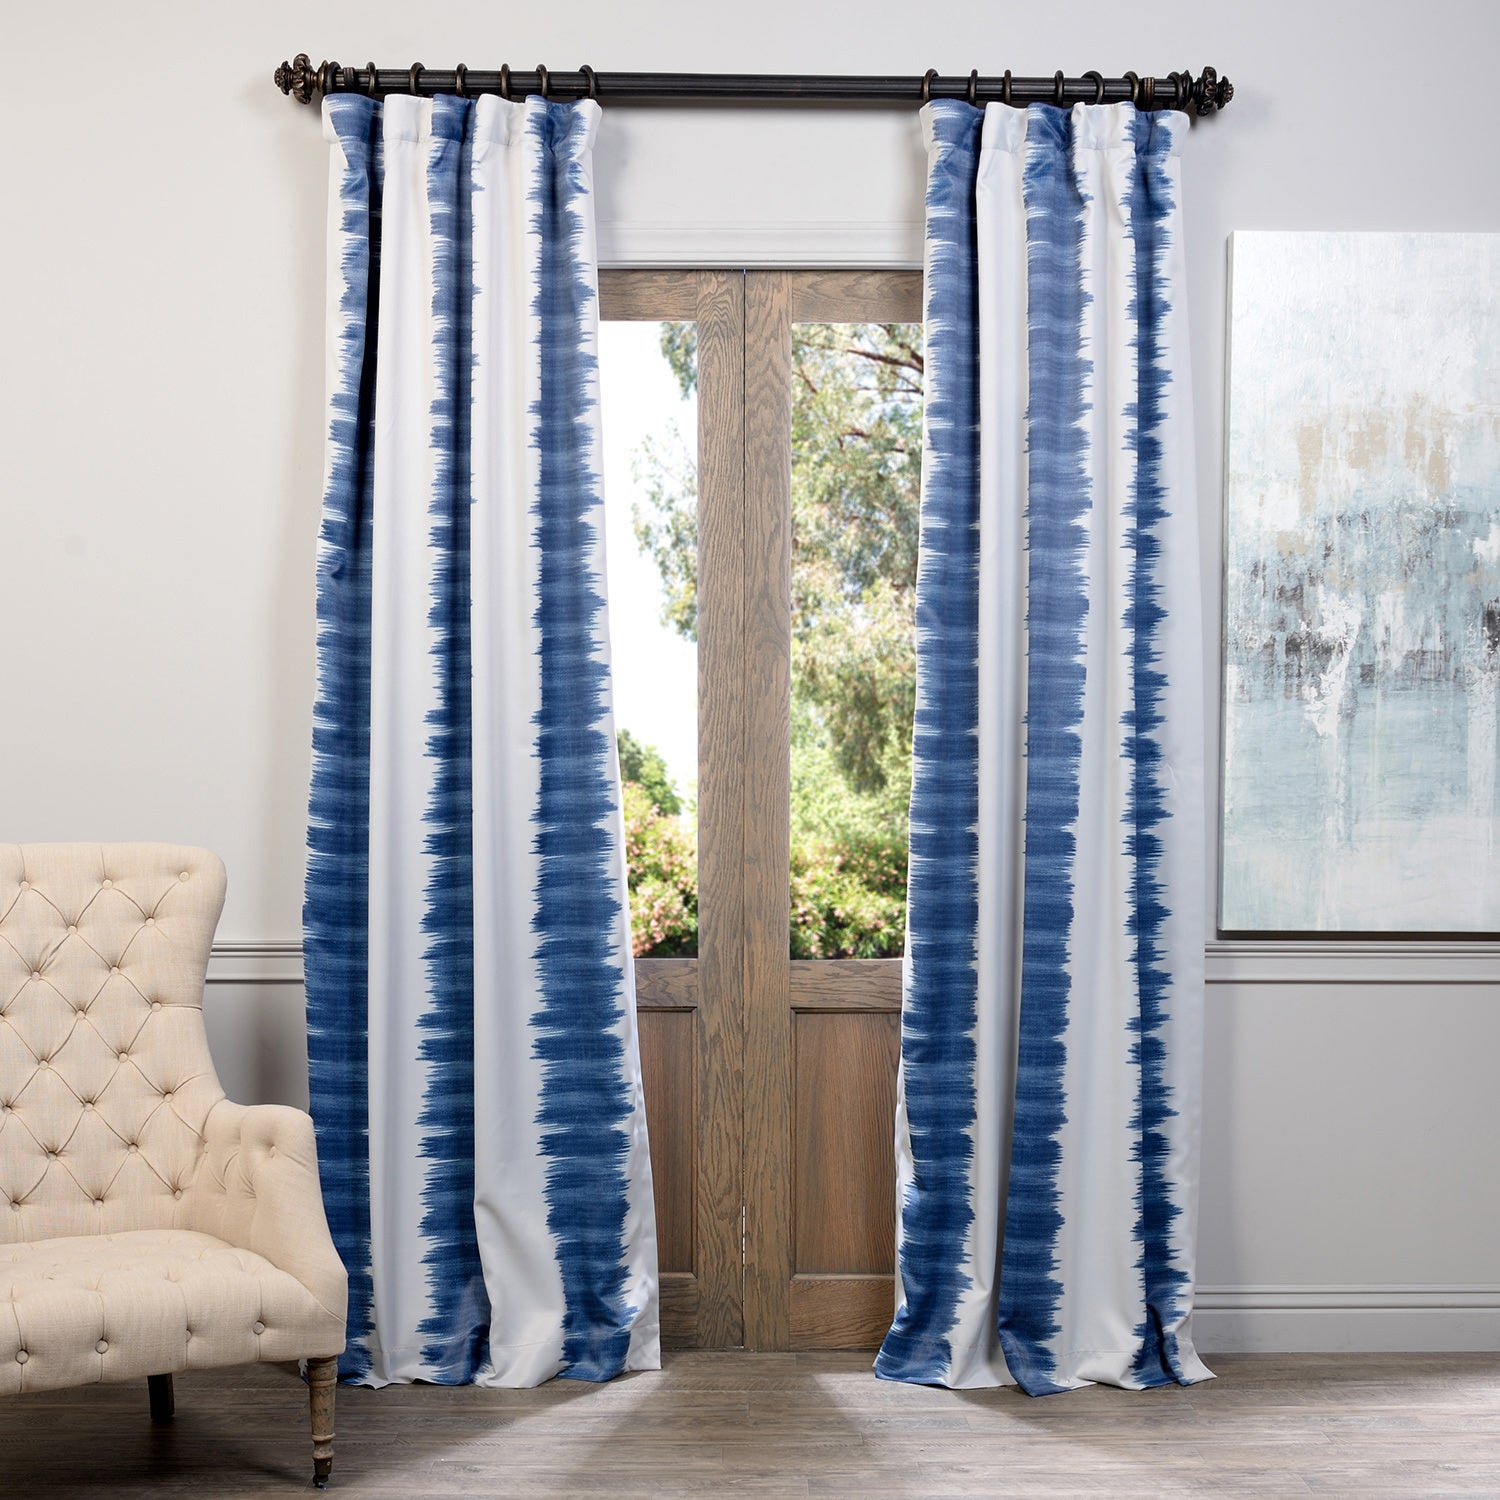 blackout more darcy top styles window home store hei qlt bed blue drapes treatments category grommet curtain wid pocket decor royal curtains rod panel